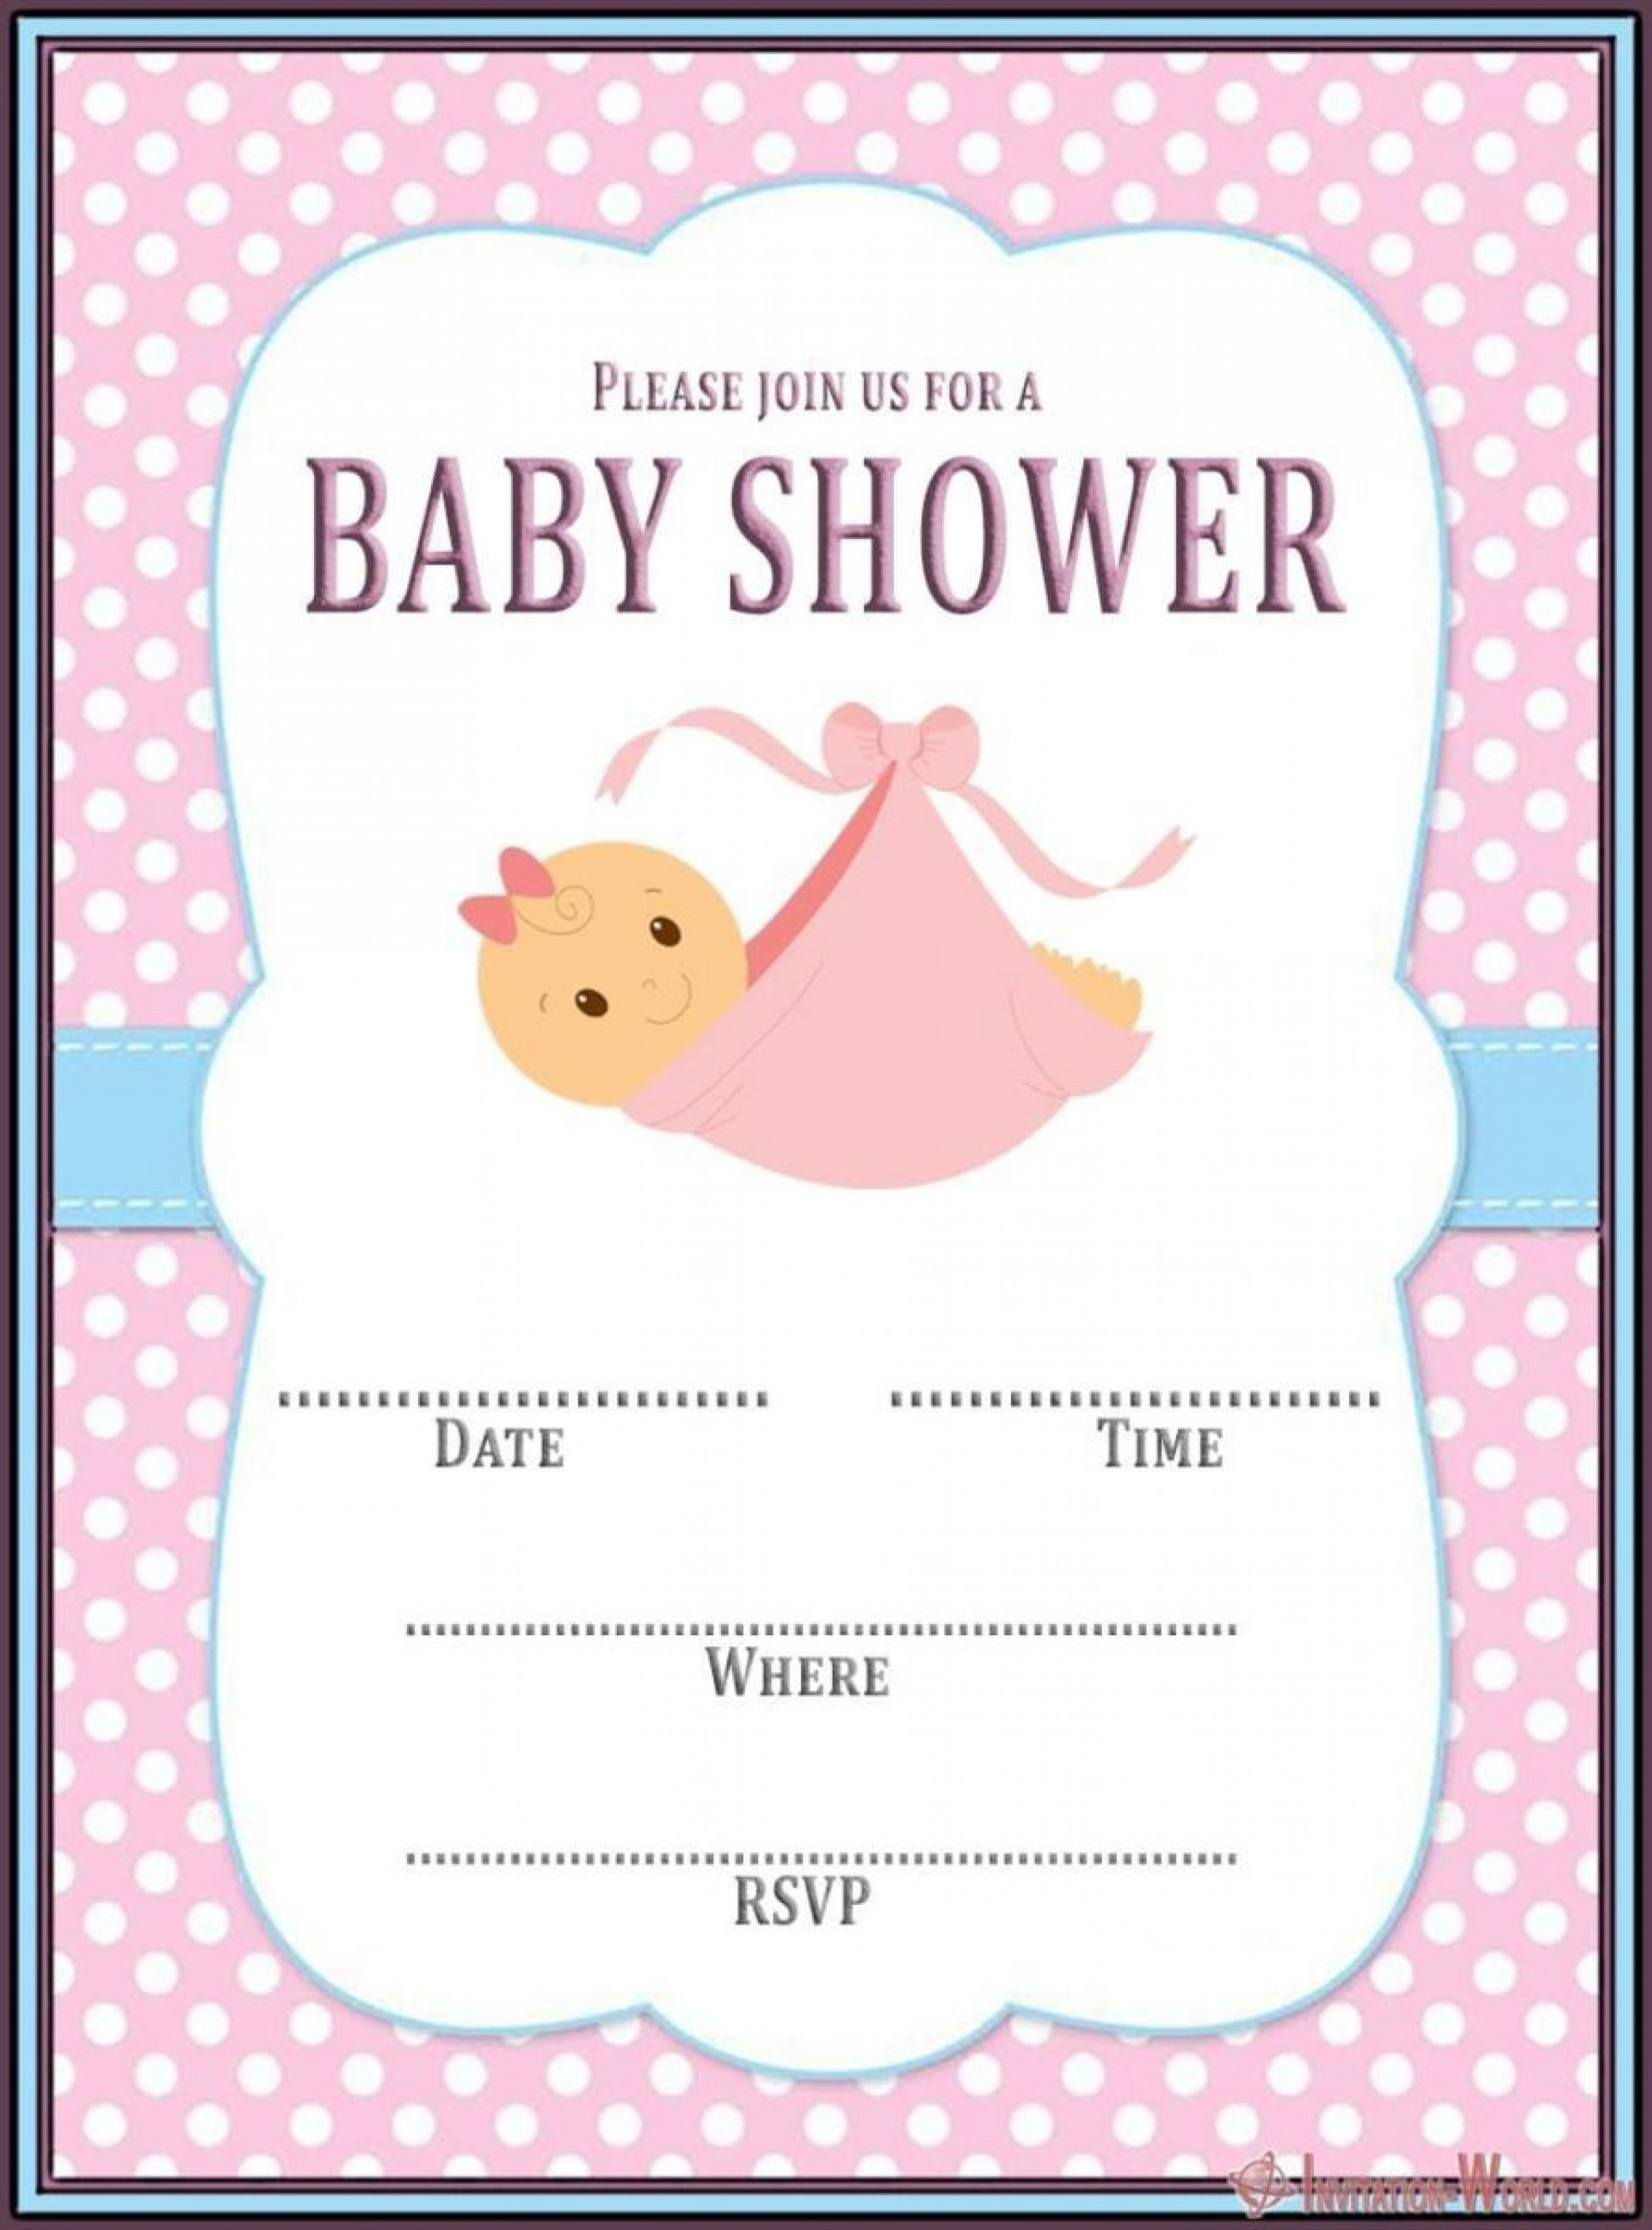 005 Best Free Editable Baby Shower Invitation Template For Word Image  Microsoft1920